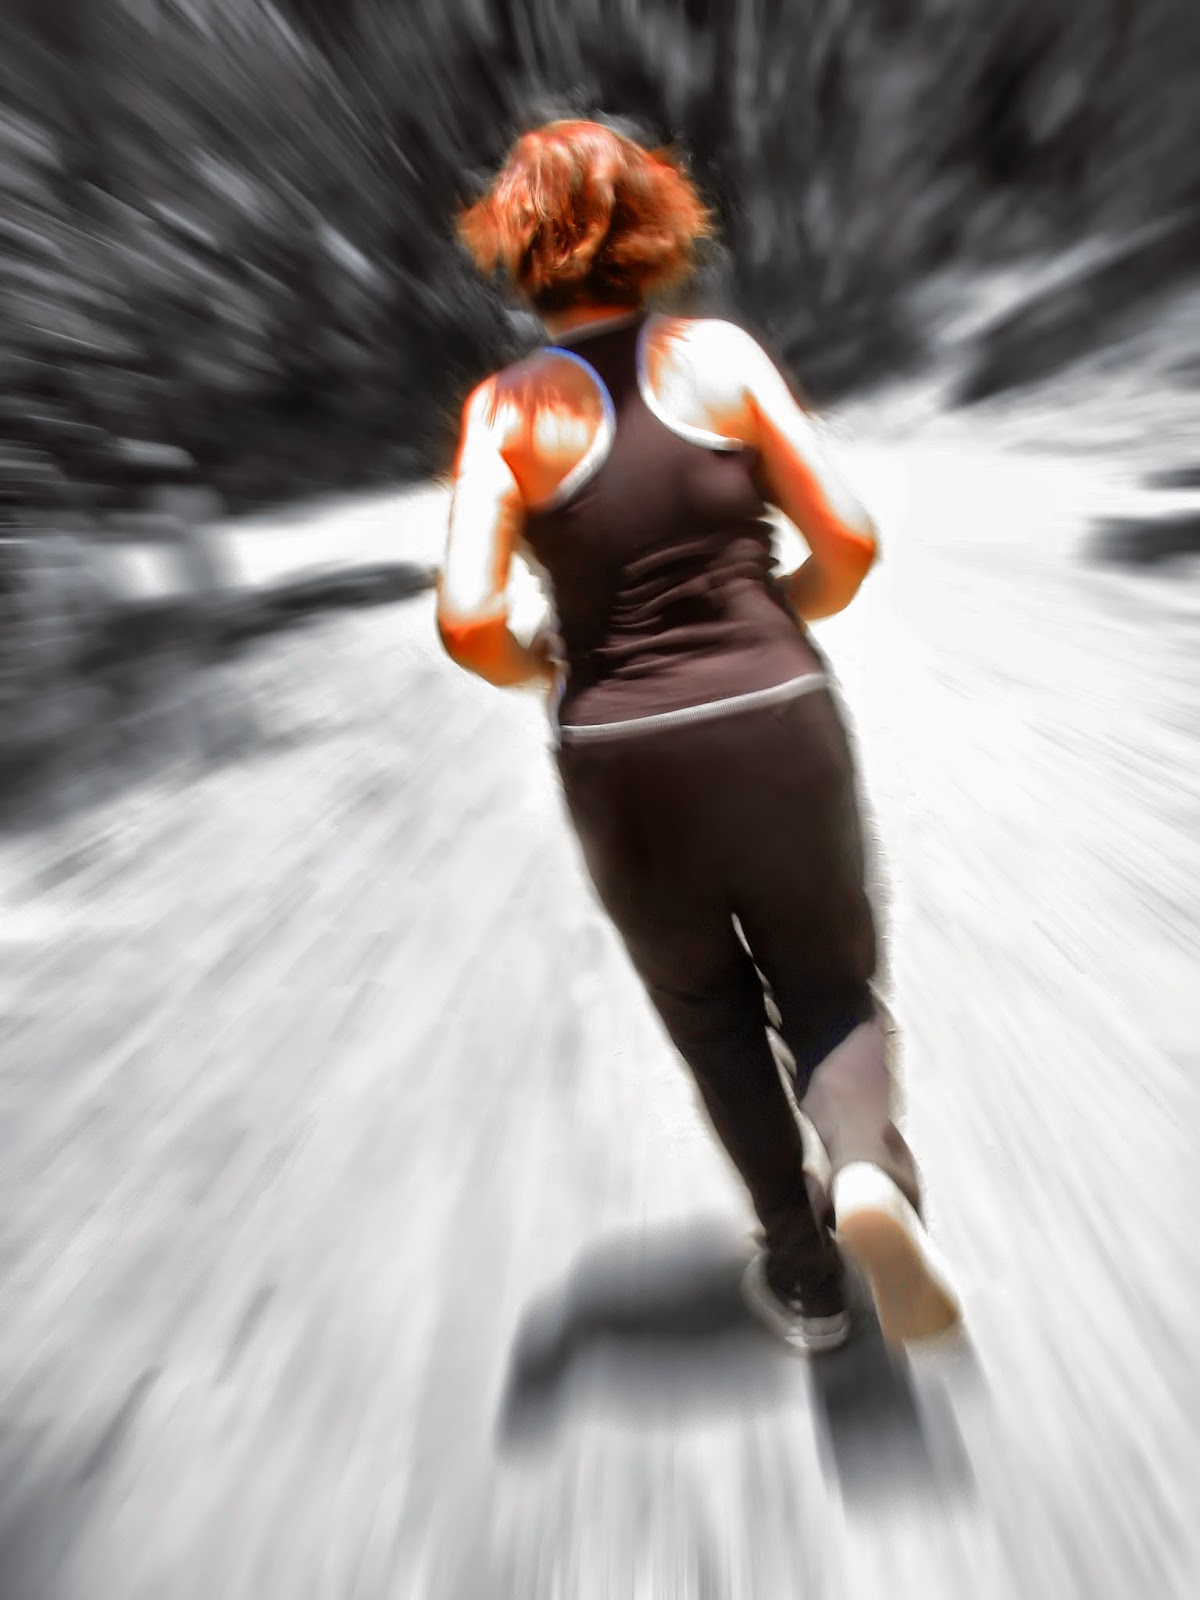 Exercise and Spiritual Growth